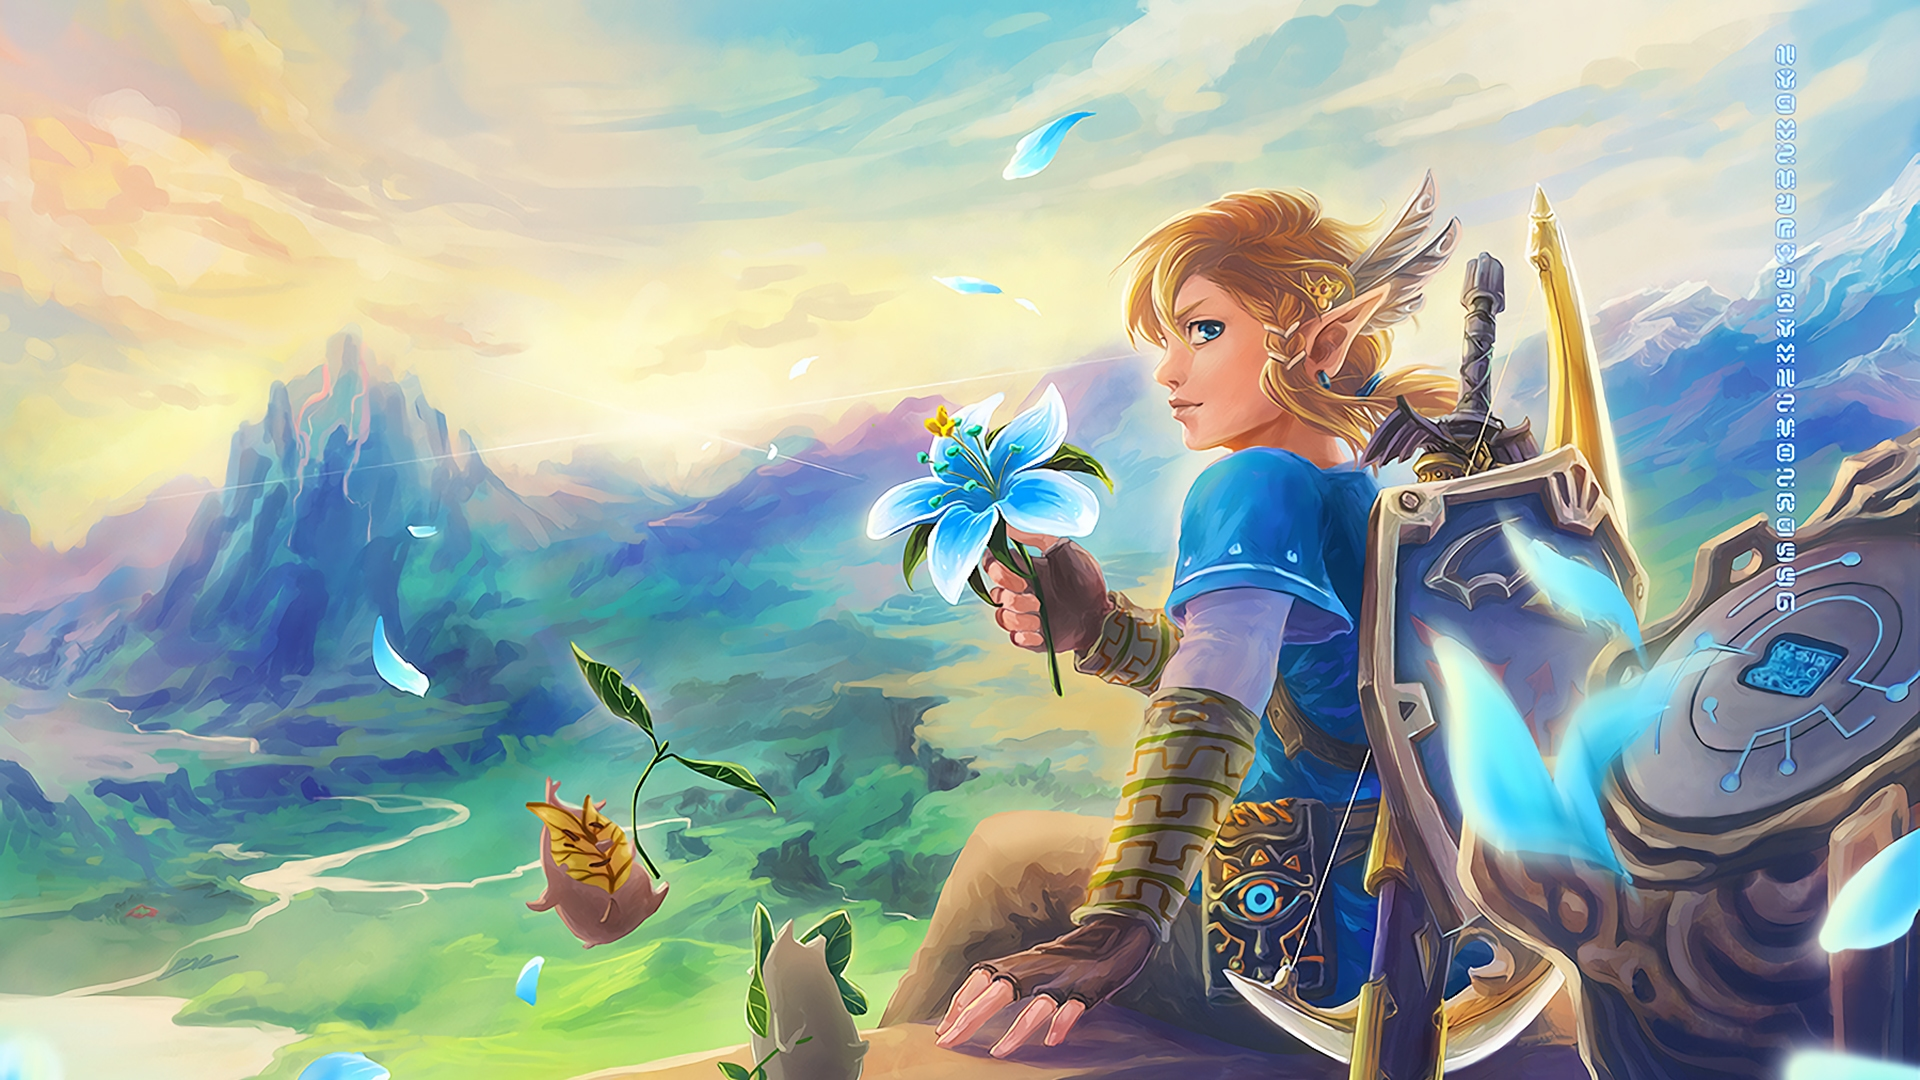 Free Download The Legend Of Zelda Breath Of The Wild Video Game